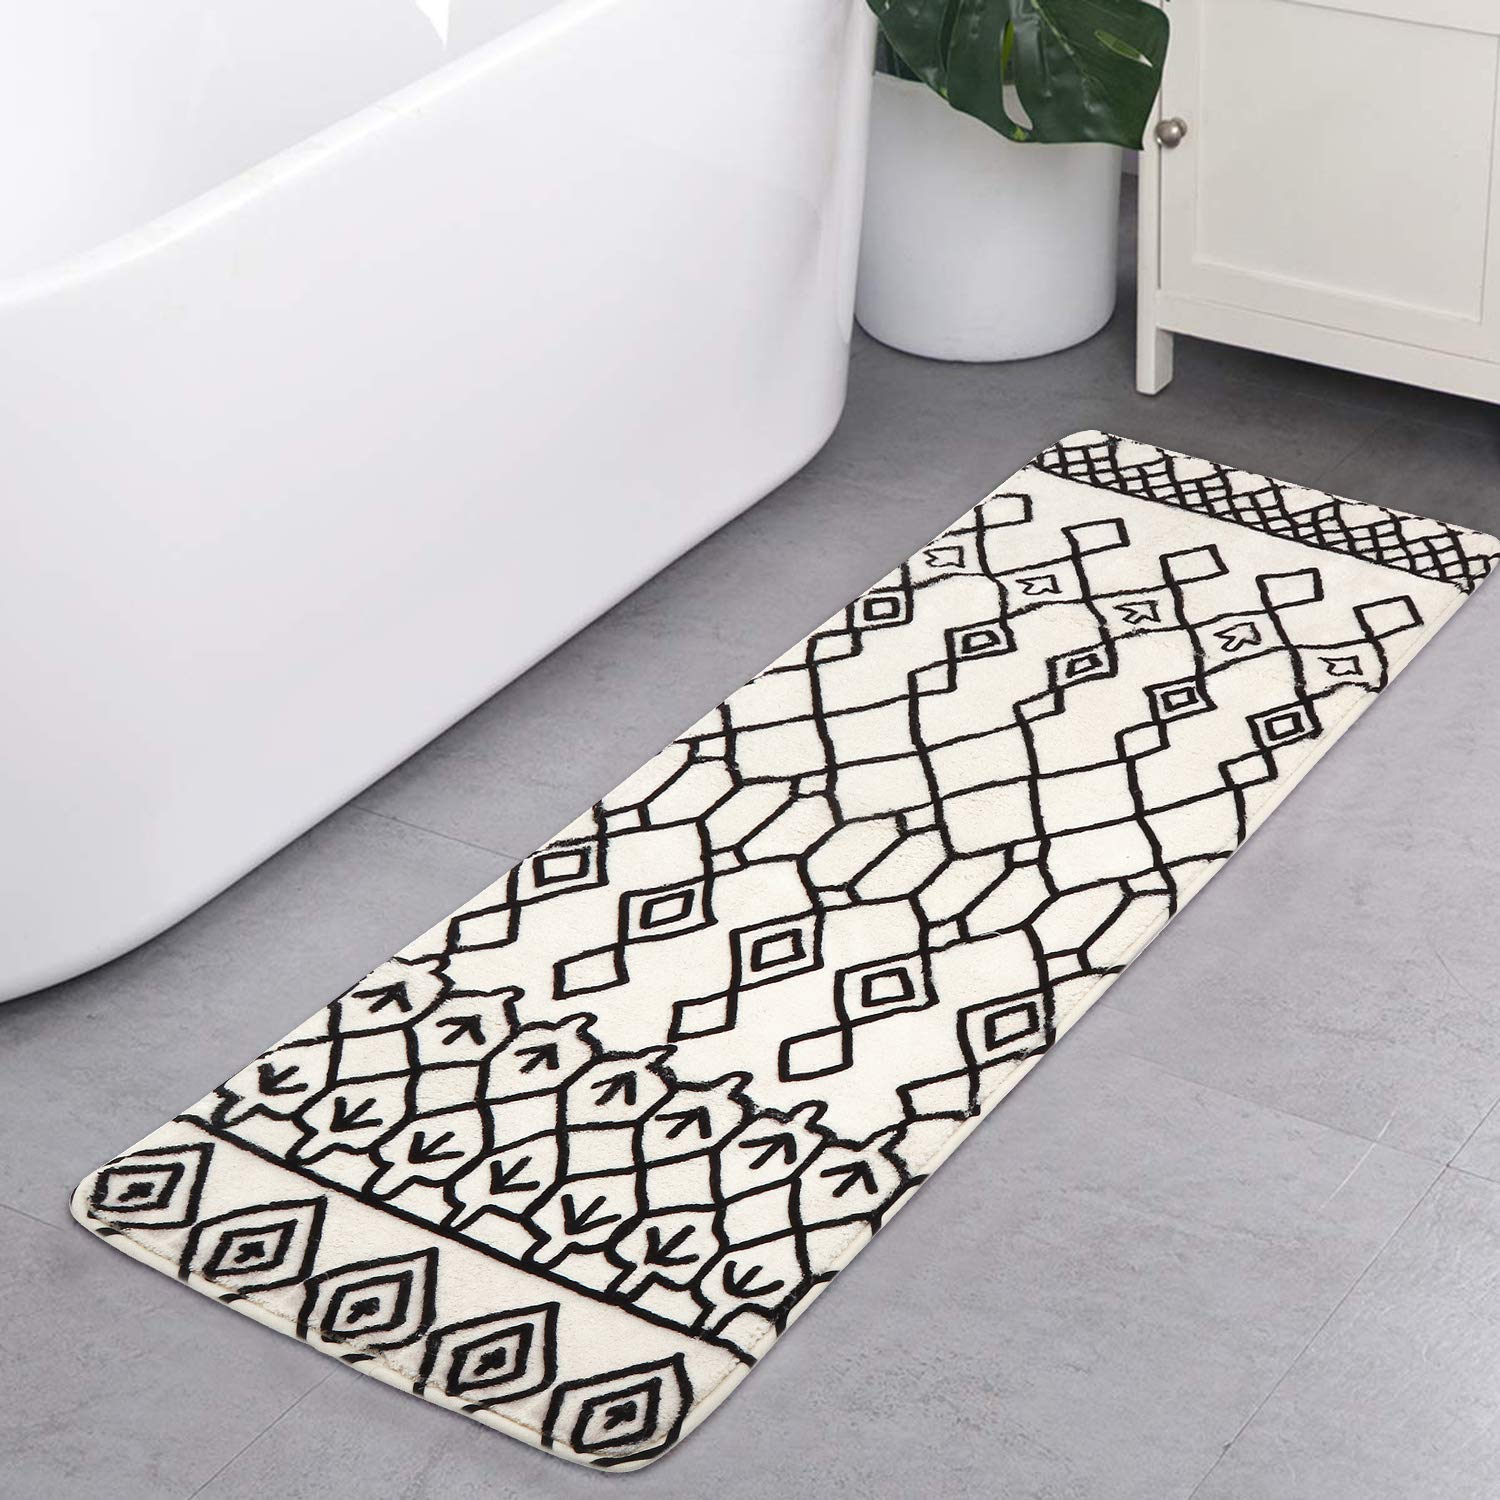 HAOCOO Bath Rug Runner 18x47 inch Soft Velvet BohoTribal Bathroom Rugs Non-Slip Geometric Bath Mat Door Carpet Luxury Microfiber Machine-Washable Diamond Floor Rugs for Tub Shower